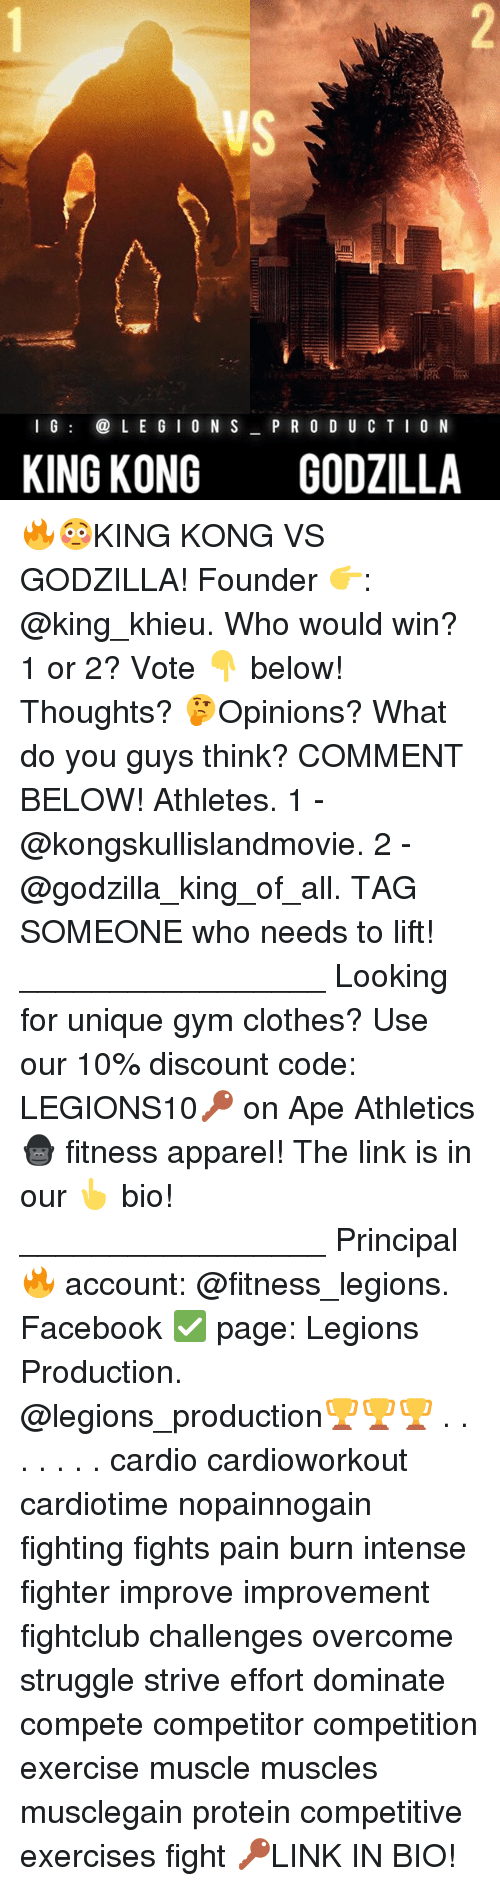 Clothes, Facebook, and Godzilla: I G  L E G I O N S  P R O D U C T I ON  KING KONG  GODZILLA 🔥😳KING KONG VS GODZILLA! Founder 👉: @king_khieu. Who would win? 1 or 2? Vote 👇 below! Thoughts? 🤔Opinions? What do you guys think? COMMENT BELOW! Athletes. 1 - @kongskullislandmovie. 2 - @godzilla_king_of_all. TAG SOMEONE who needs to lift! _________________ Looking for unique gym clothes? Use our 10% discount code: LEGIONS10🔑 on Ape Athletics 🦍 fitness apparel! The link is in our 👆 bio! _________________ Principal 🔥 account: @fitness_legions. Facebook ✅ page: Legions Production. @legions_production🏆🏆🏆 . . . . . . . cardio cardioworkout cardiotime nopainnogain fighting fights pain burn intense fighter improve improvement fightclub challenges overcome struggle strive effort dominate compete competitor competition exercise muscle muscles musclegain protein competitive exercises fight 🔑LINK IN BIO!